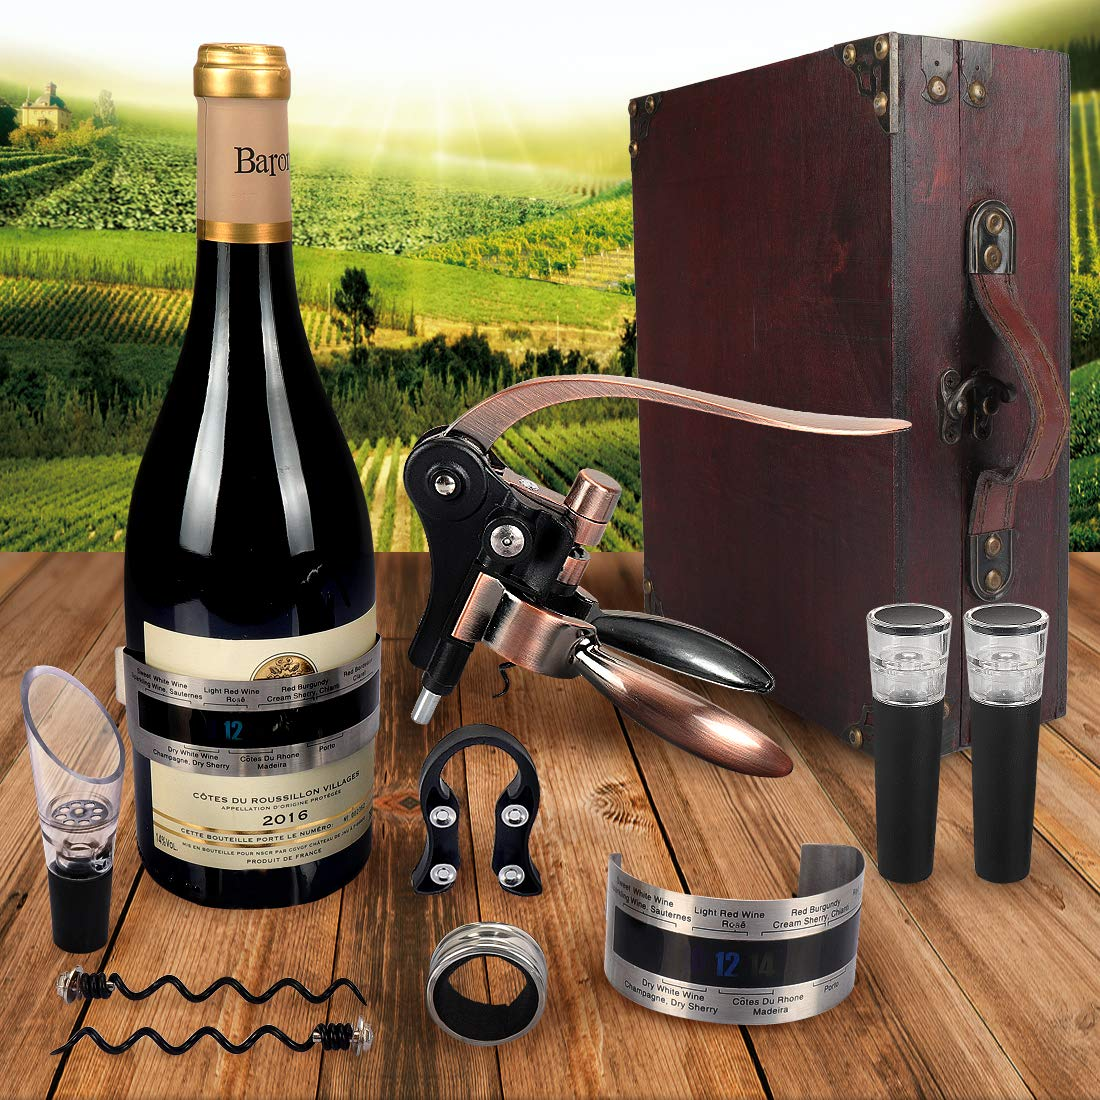 Antique wooden box rabbit wine corkscrew wine accessories gift set